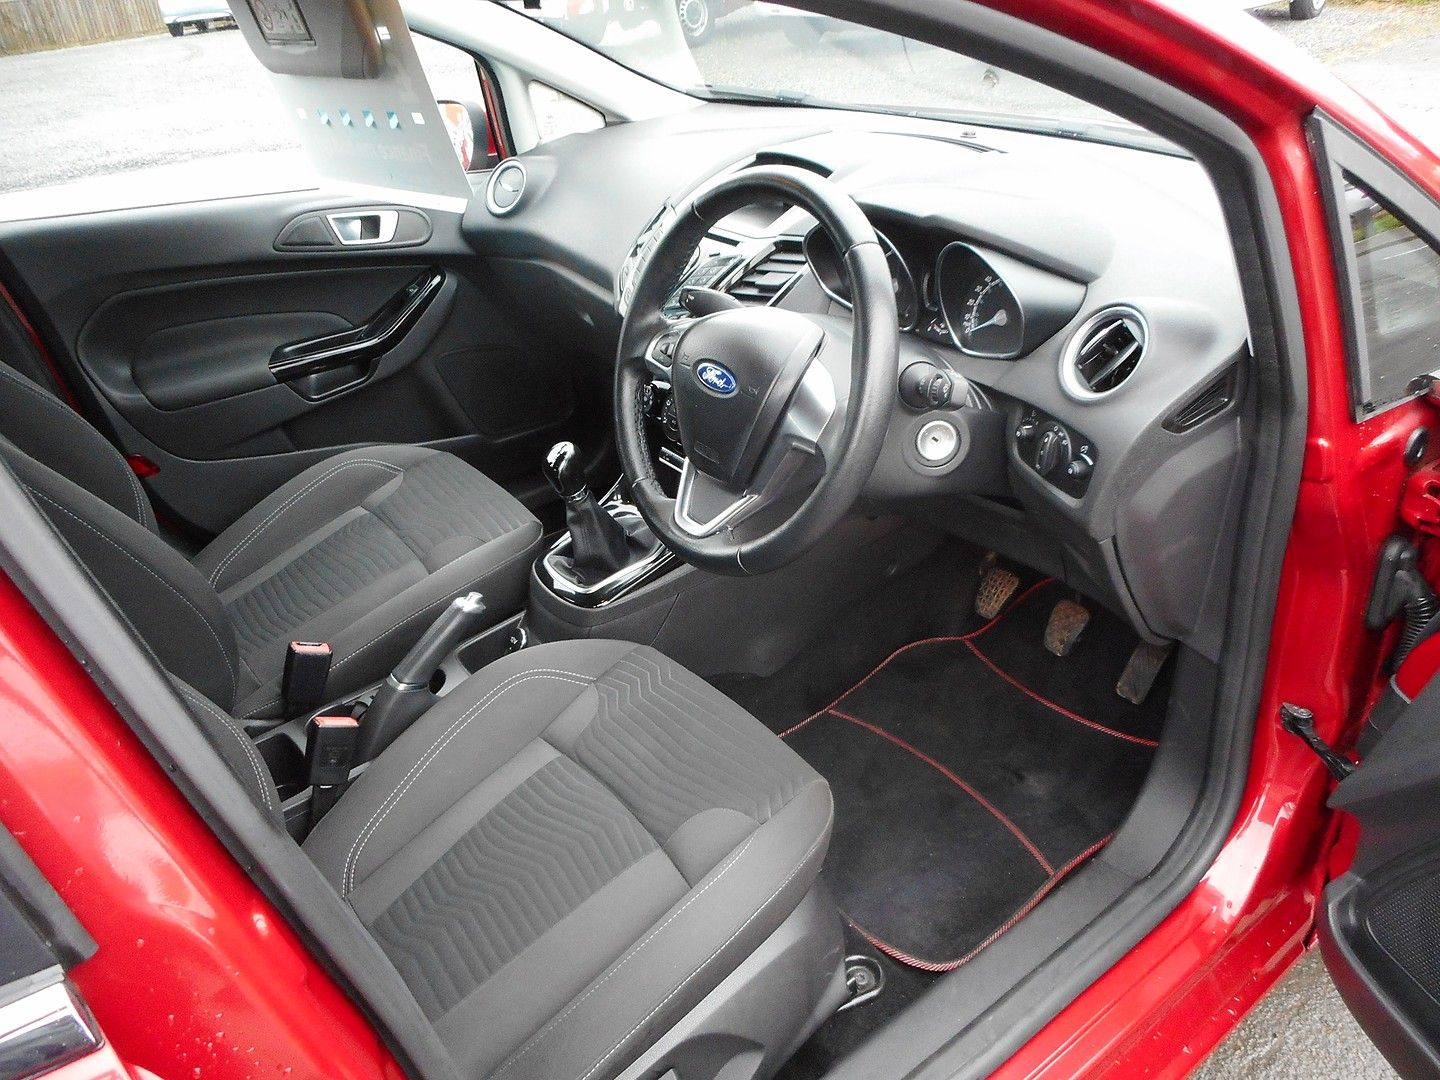 FORD Fiesta Zetec 1.0 80PS Start/Stop (2015) - Picture 11